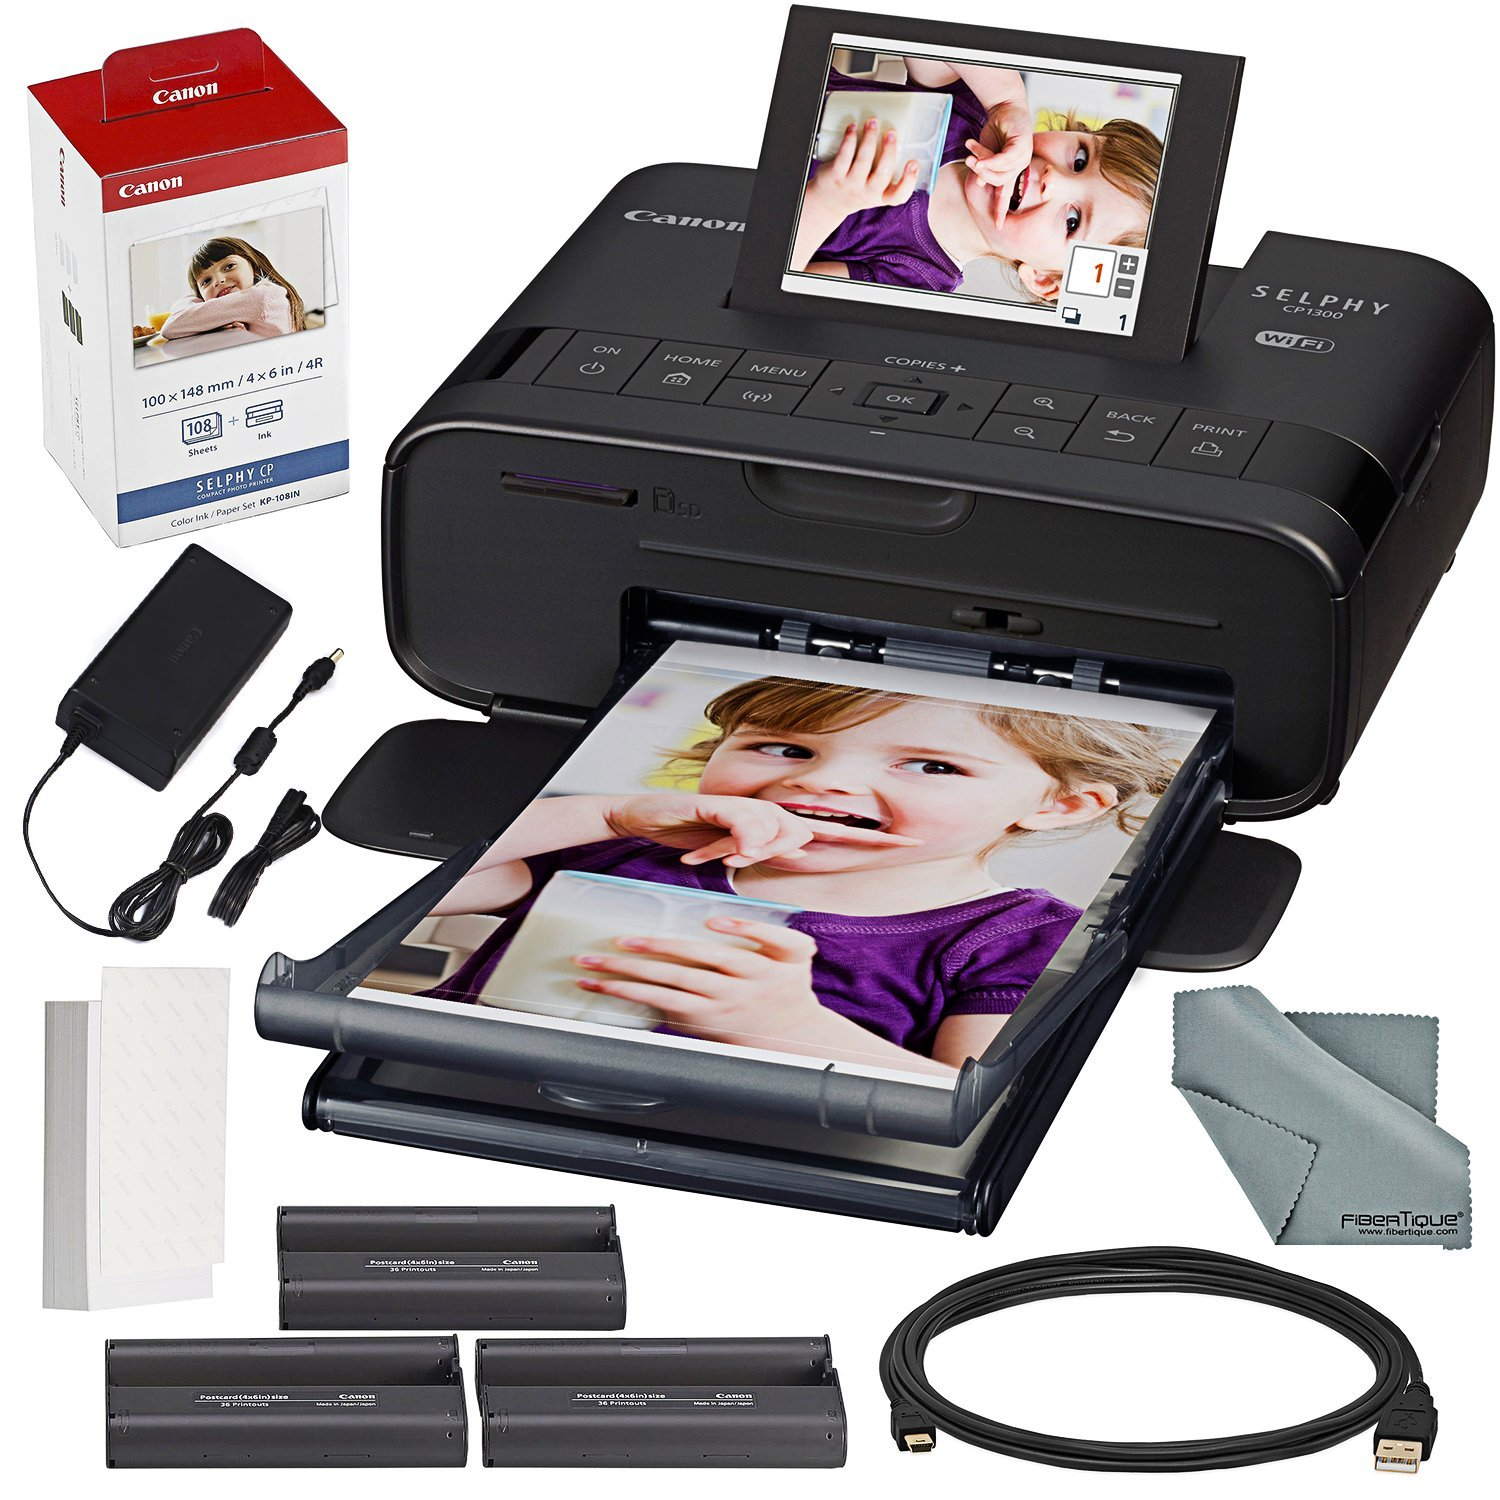 Canon SELPHY CP1300 Compact Photo Printer (Black) with WiFi and Accessory Bundle w/Canon Color Ink and Paper Set by Canon